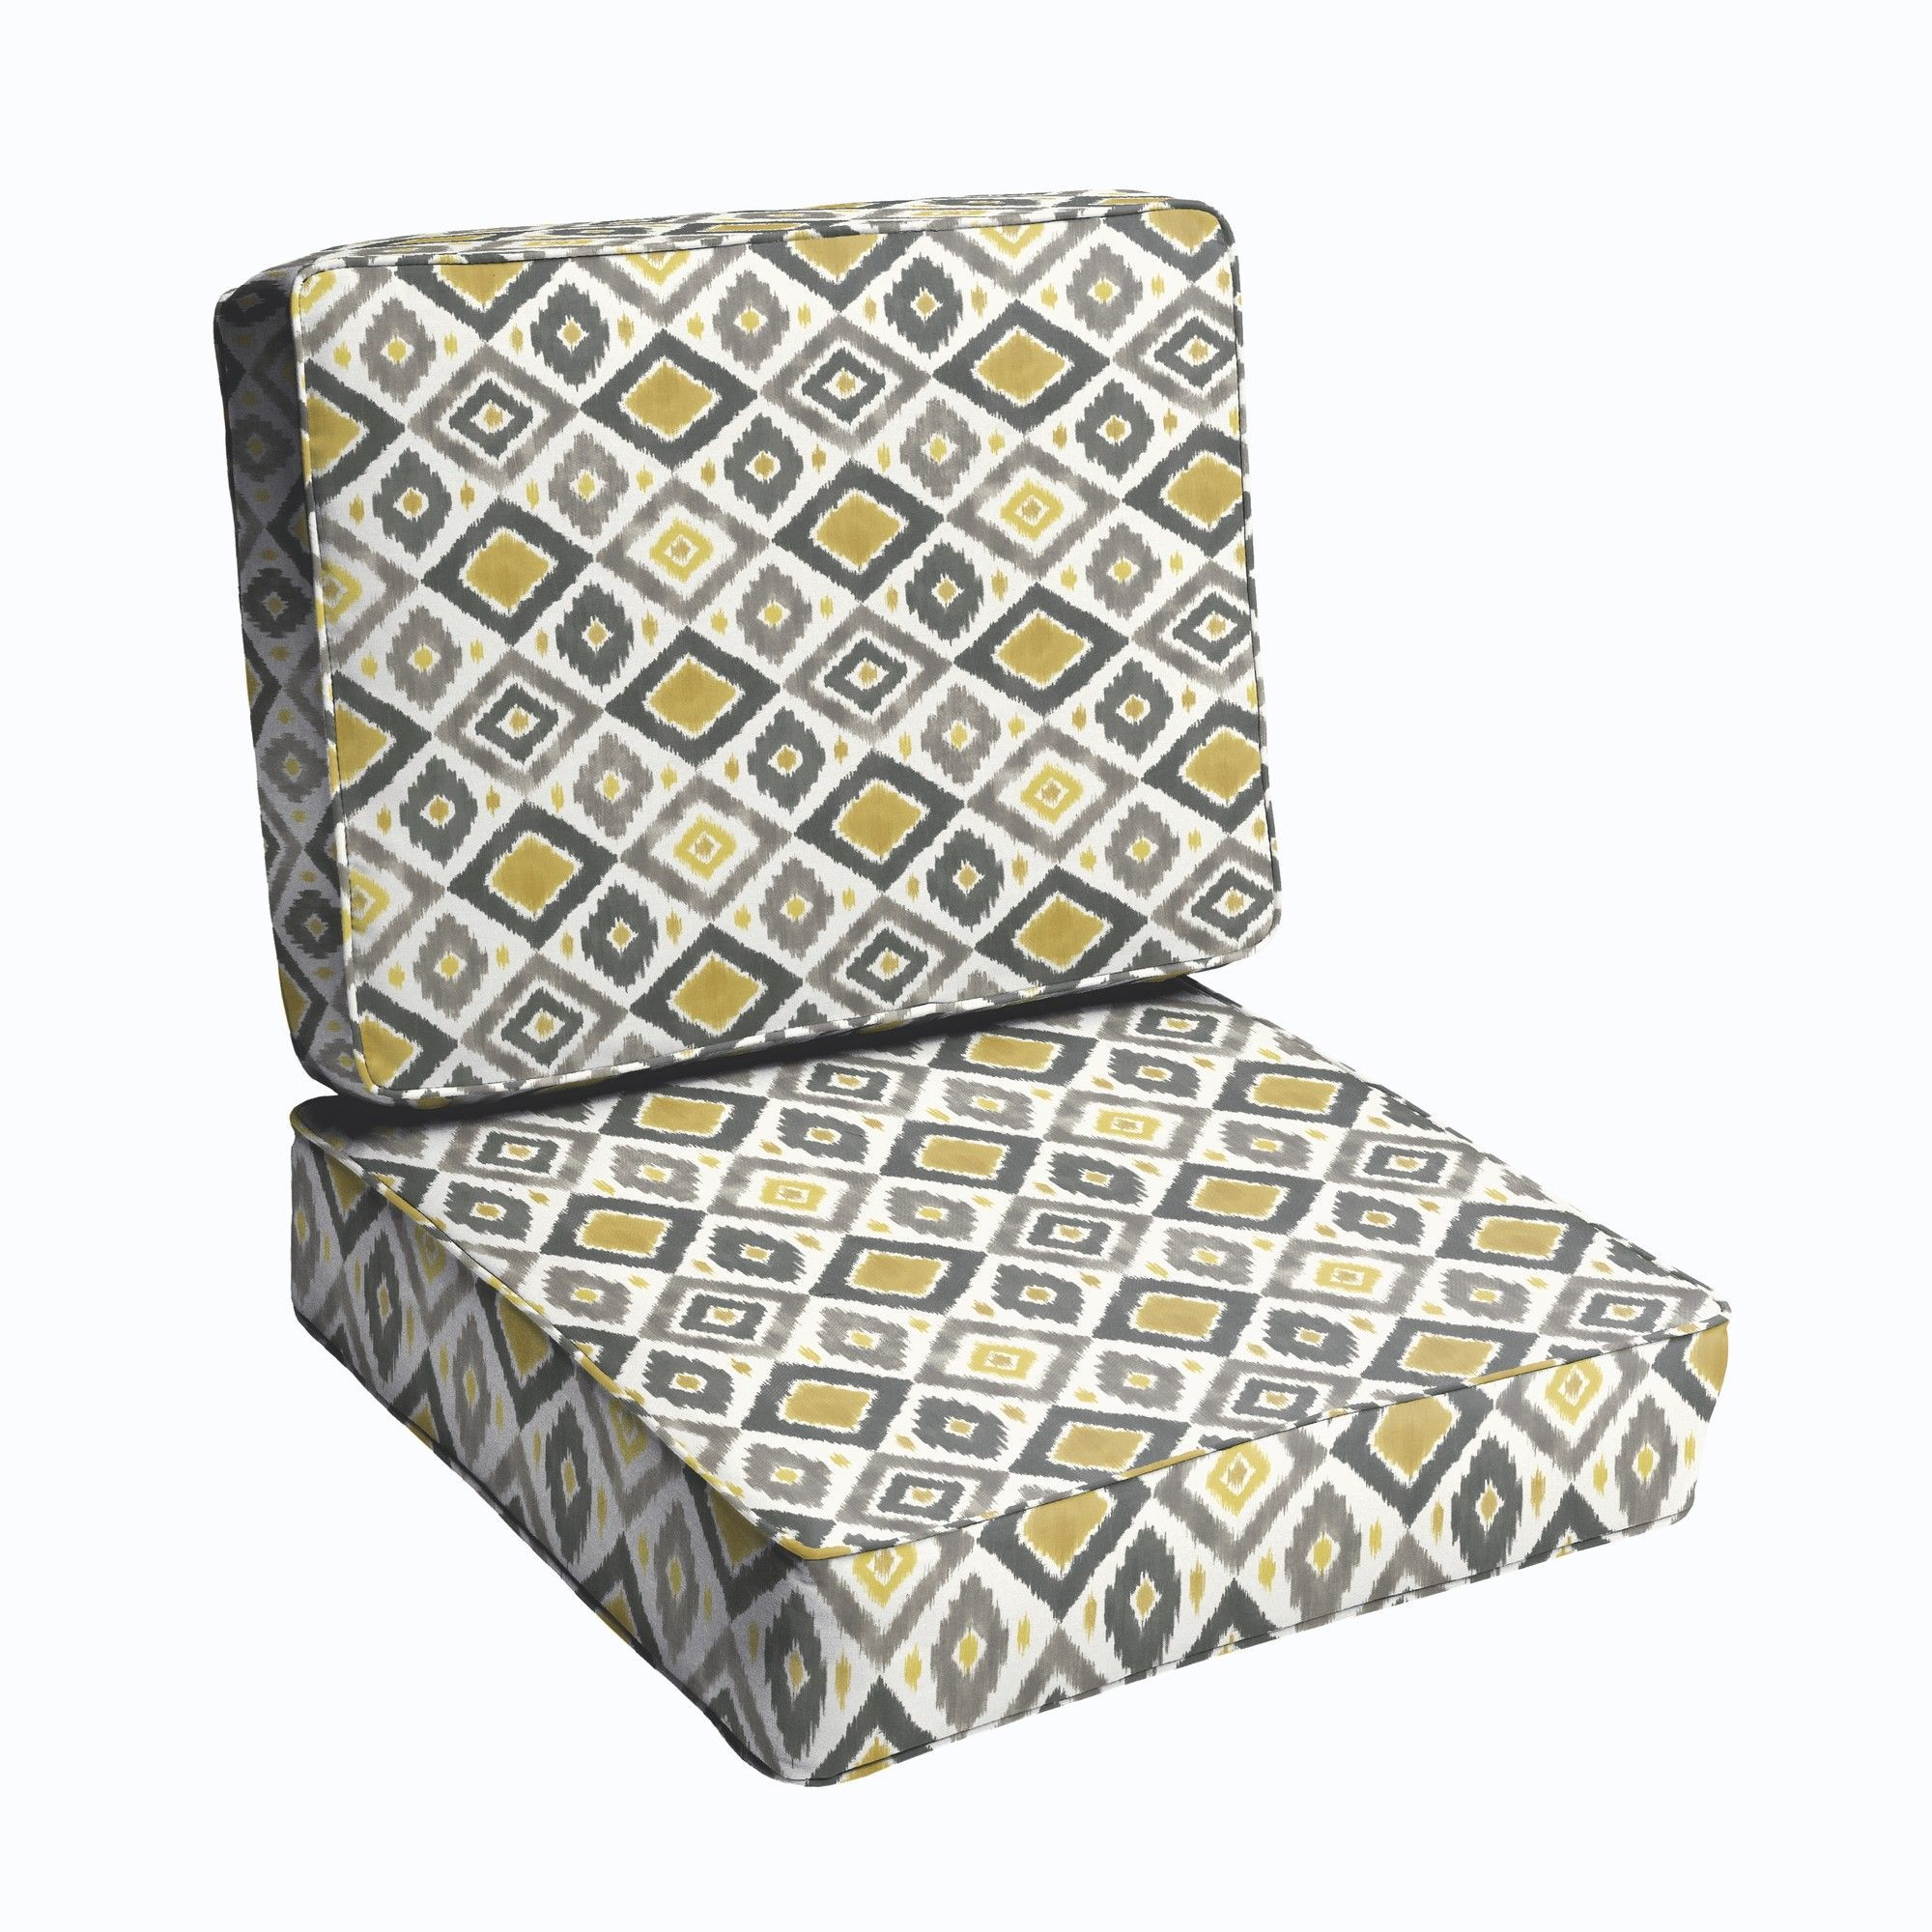 2 piece outdoor chair cushion set products pinterest 2